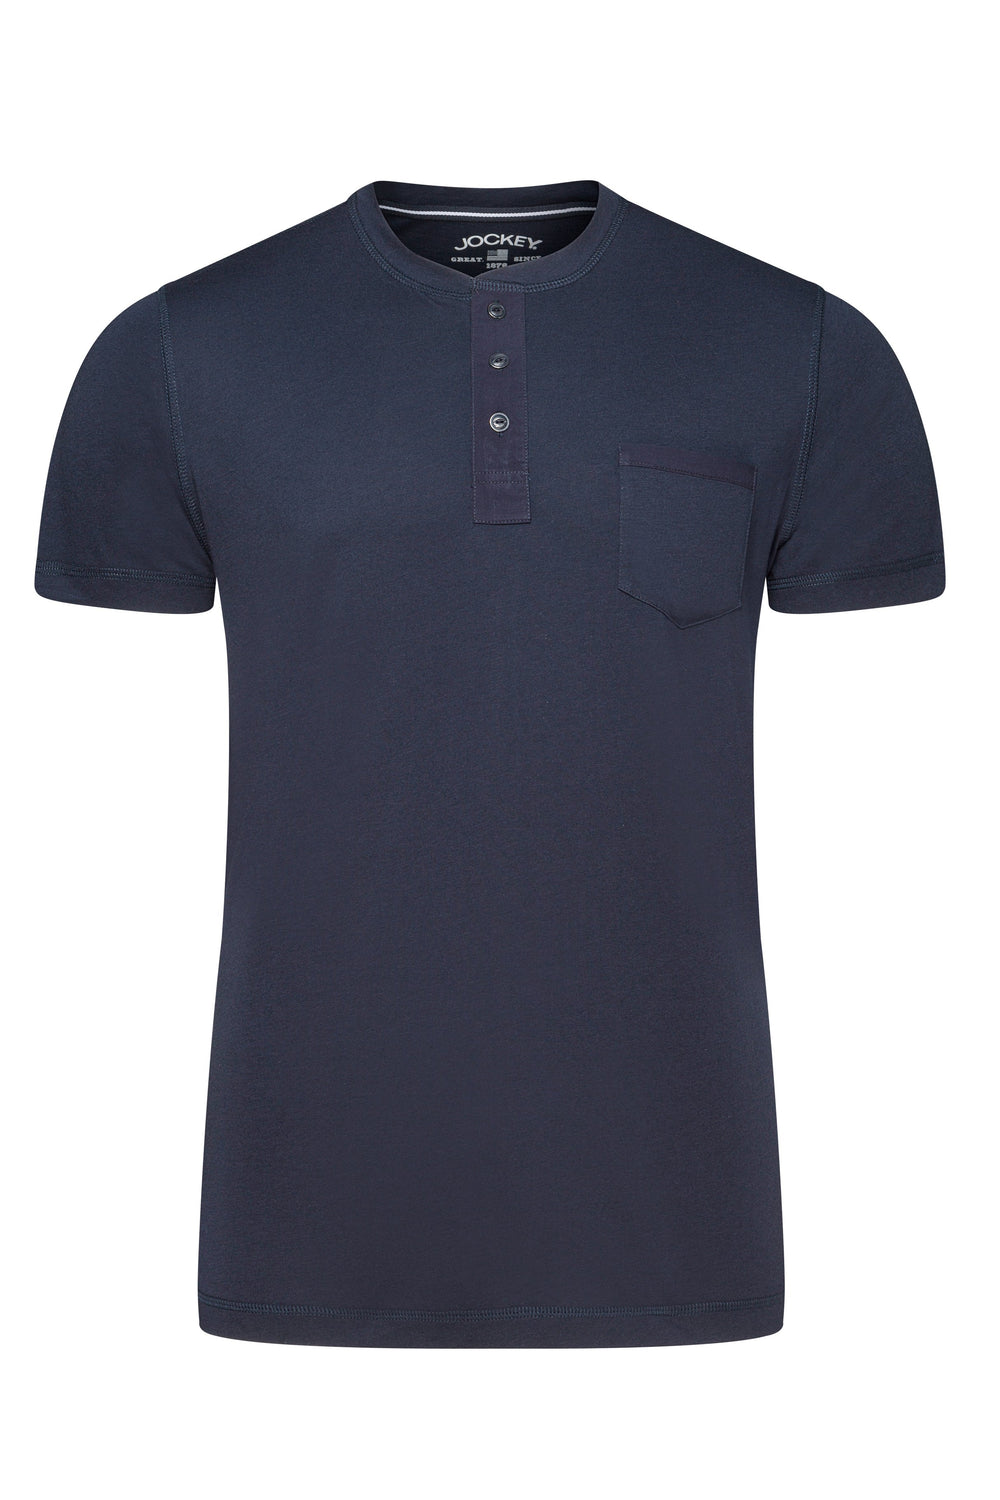 Jockey® Night and Day Short Sleeve Henley Shirt